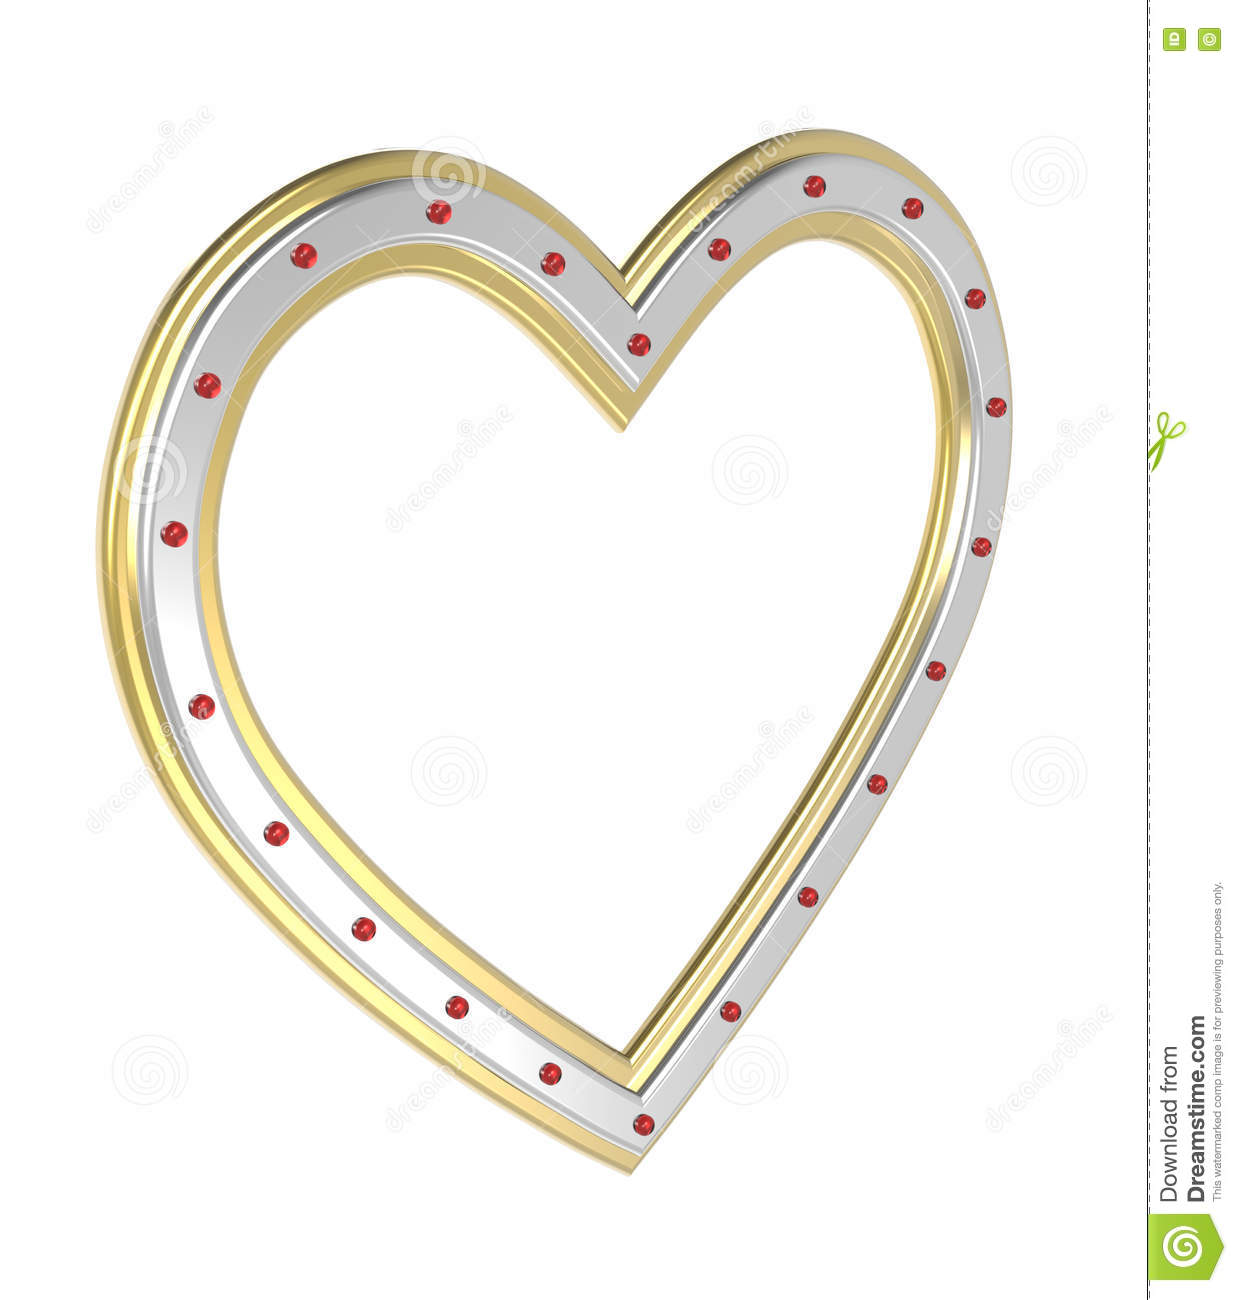 Silver gold heart picture frame isolated on white.